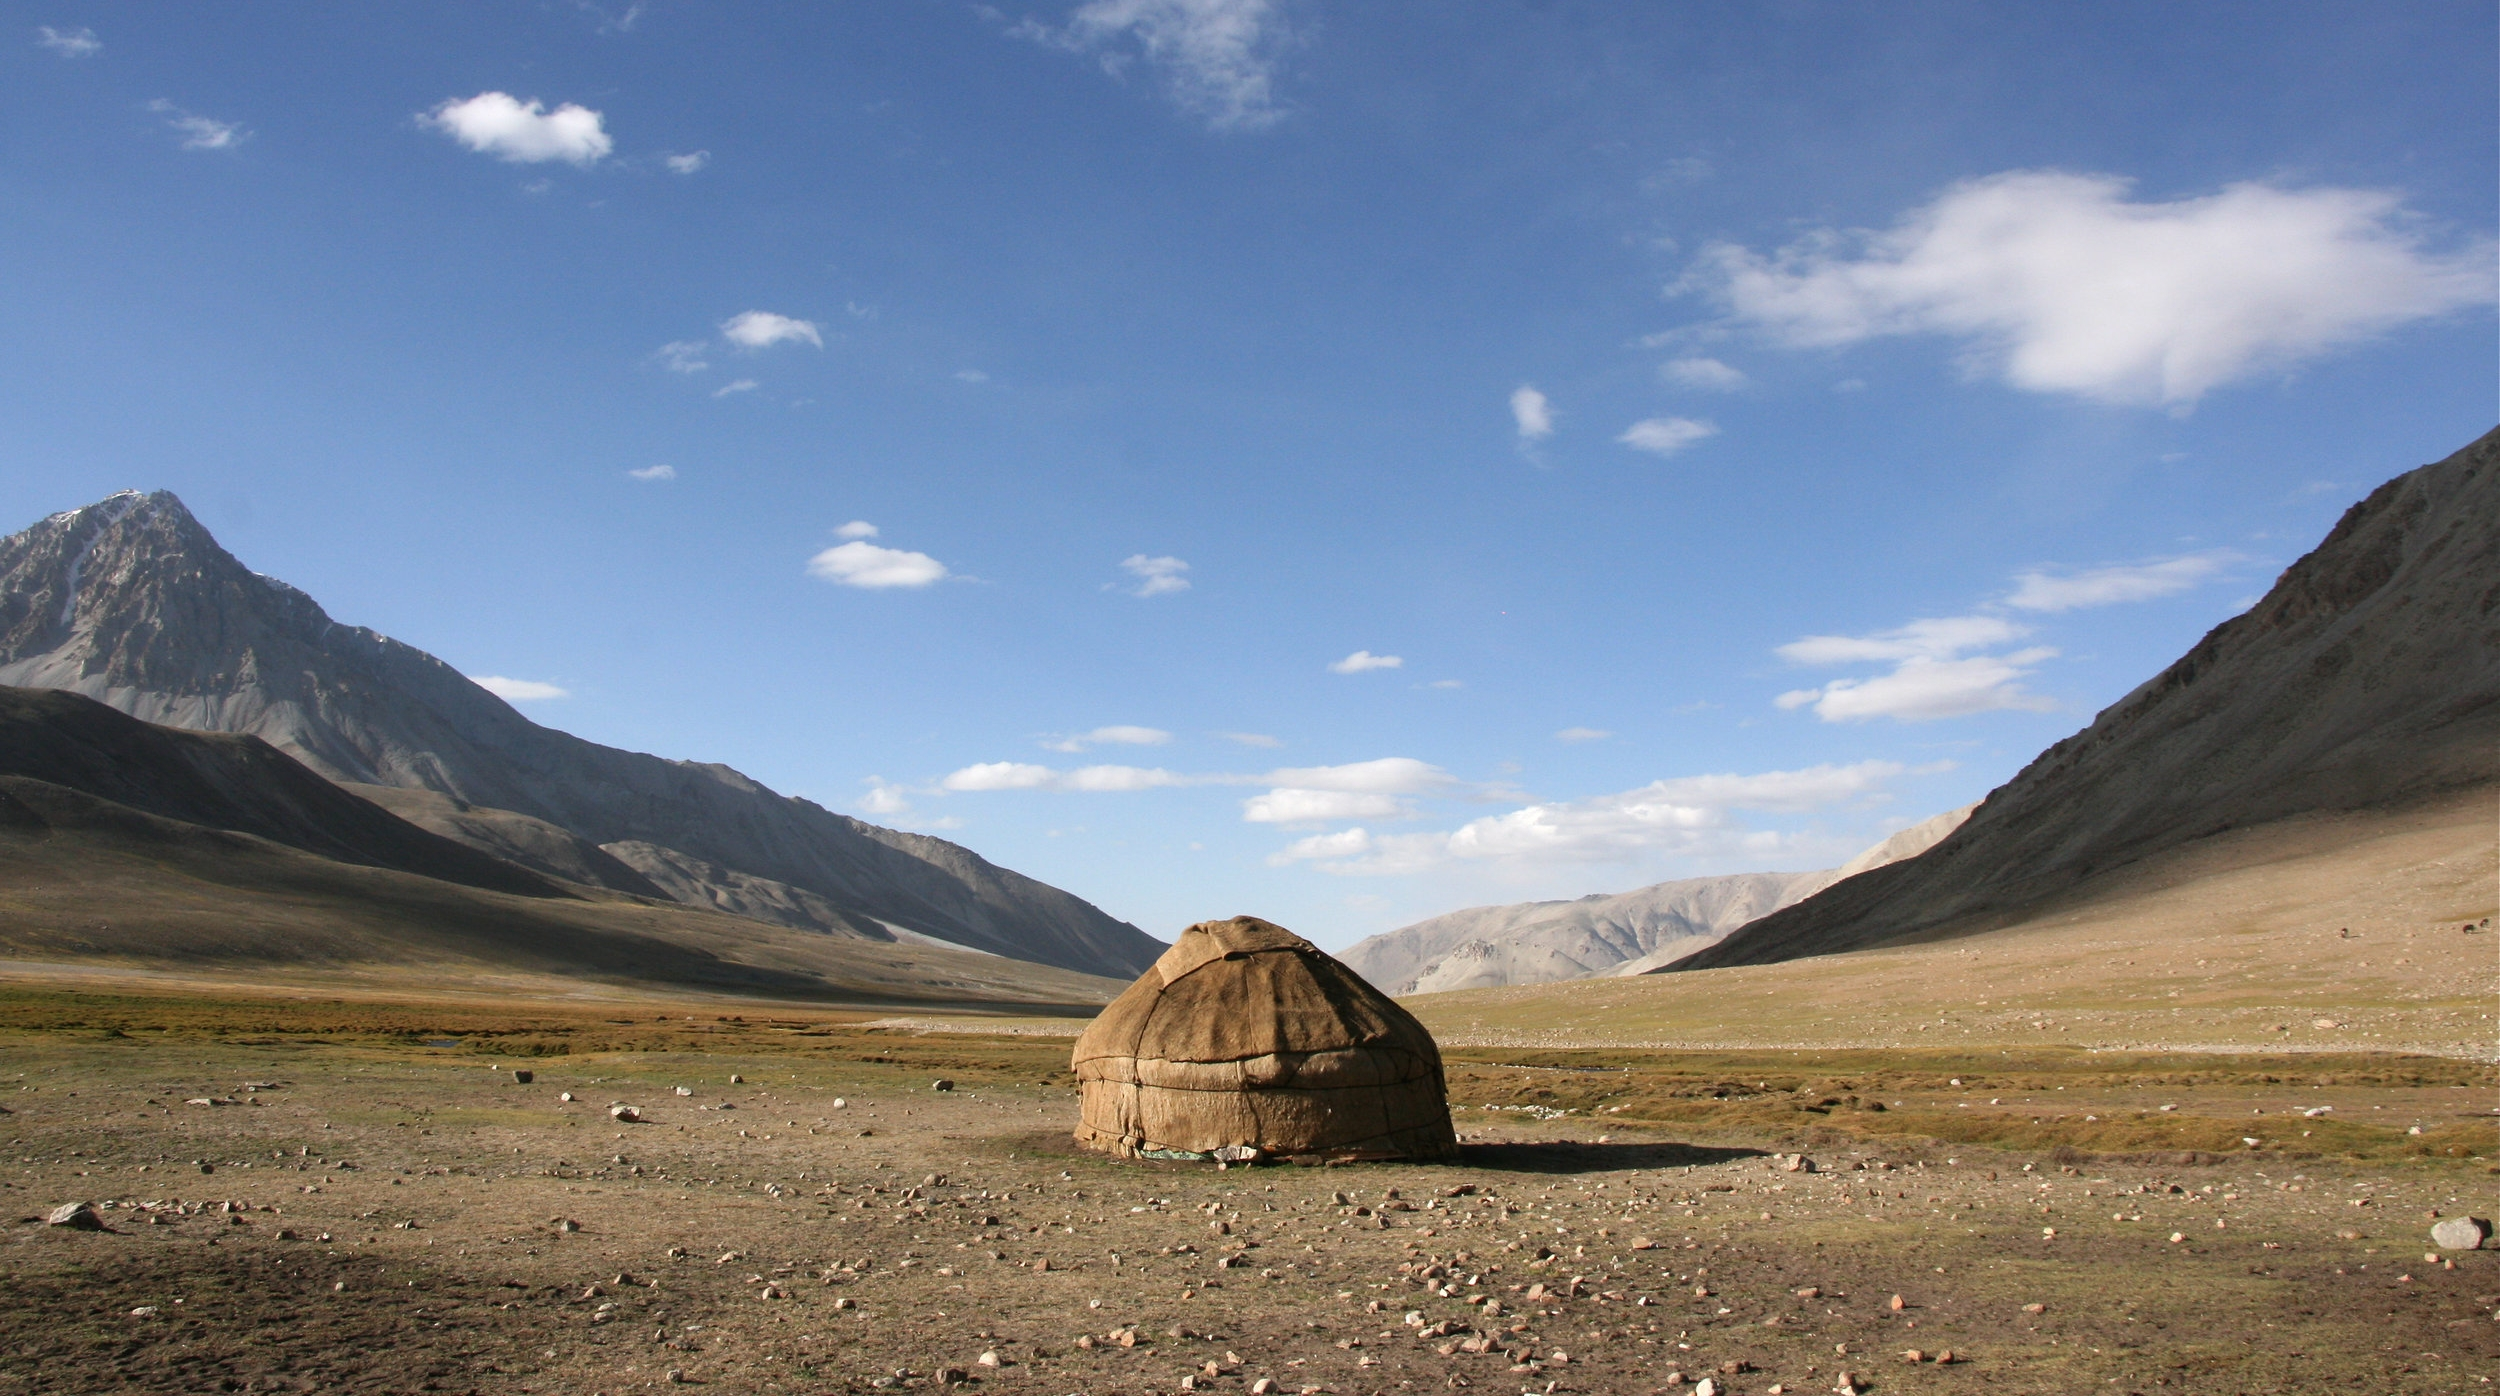 The yurt we stayed in high in the Wakhan mountain range